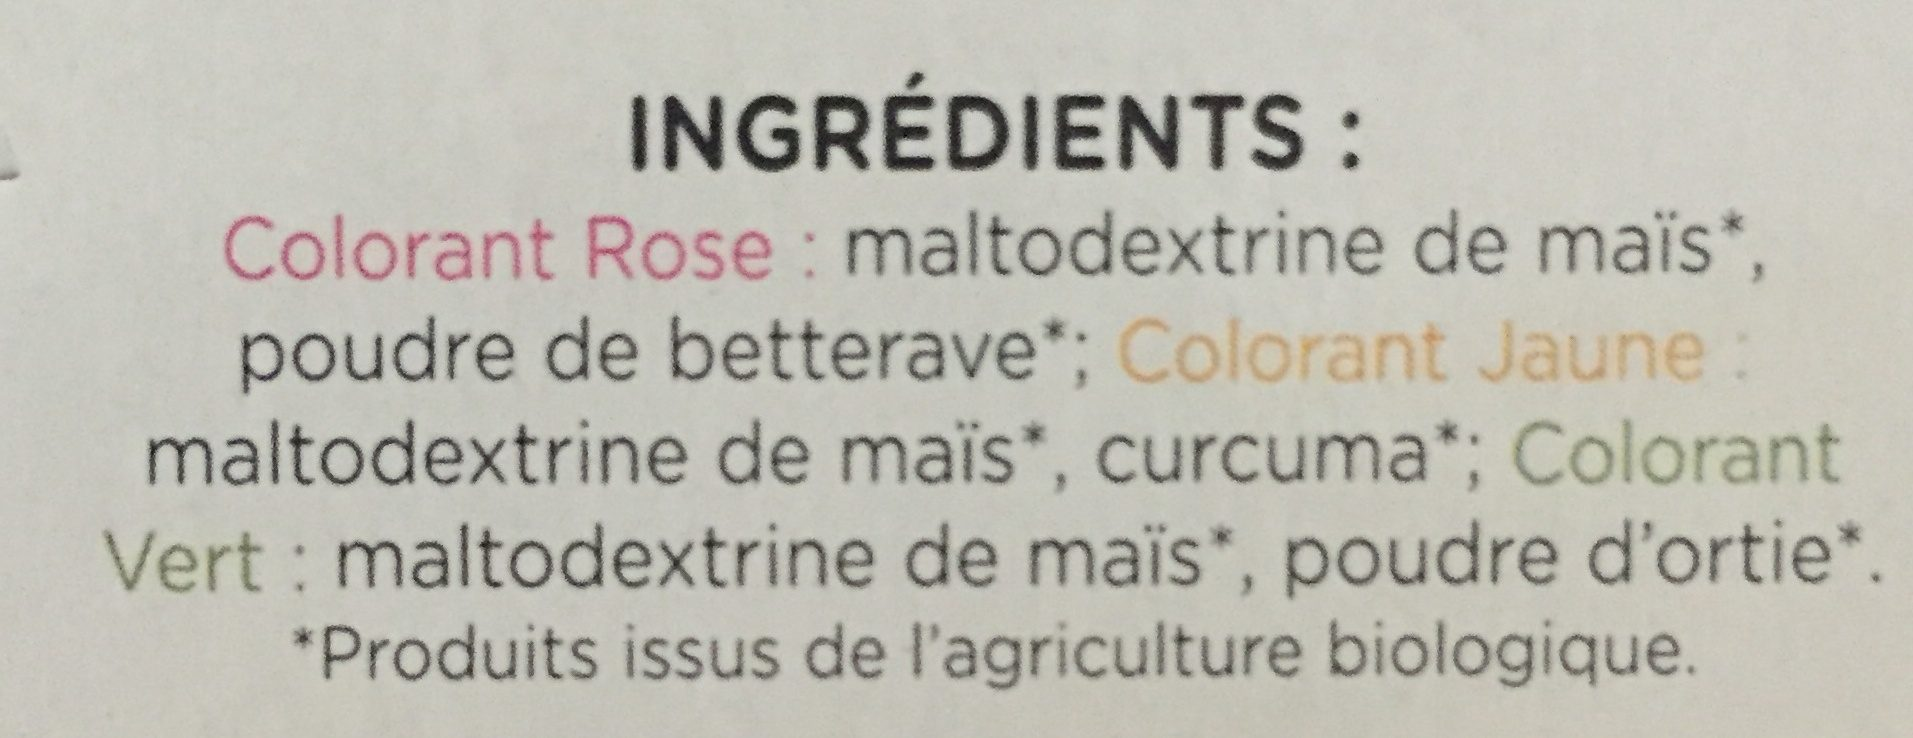 COLORANT ALIMENTAIRE 3 COULEURS 6 DOSES - Ingredients - fr